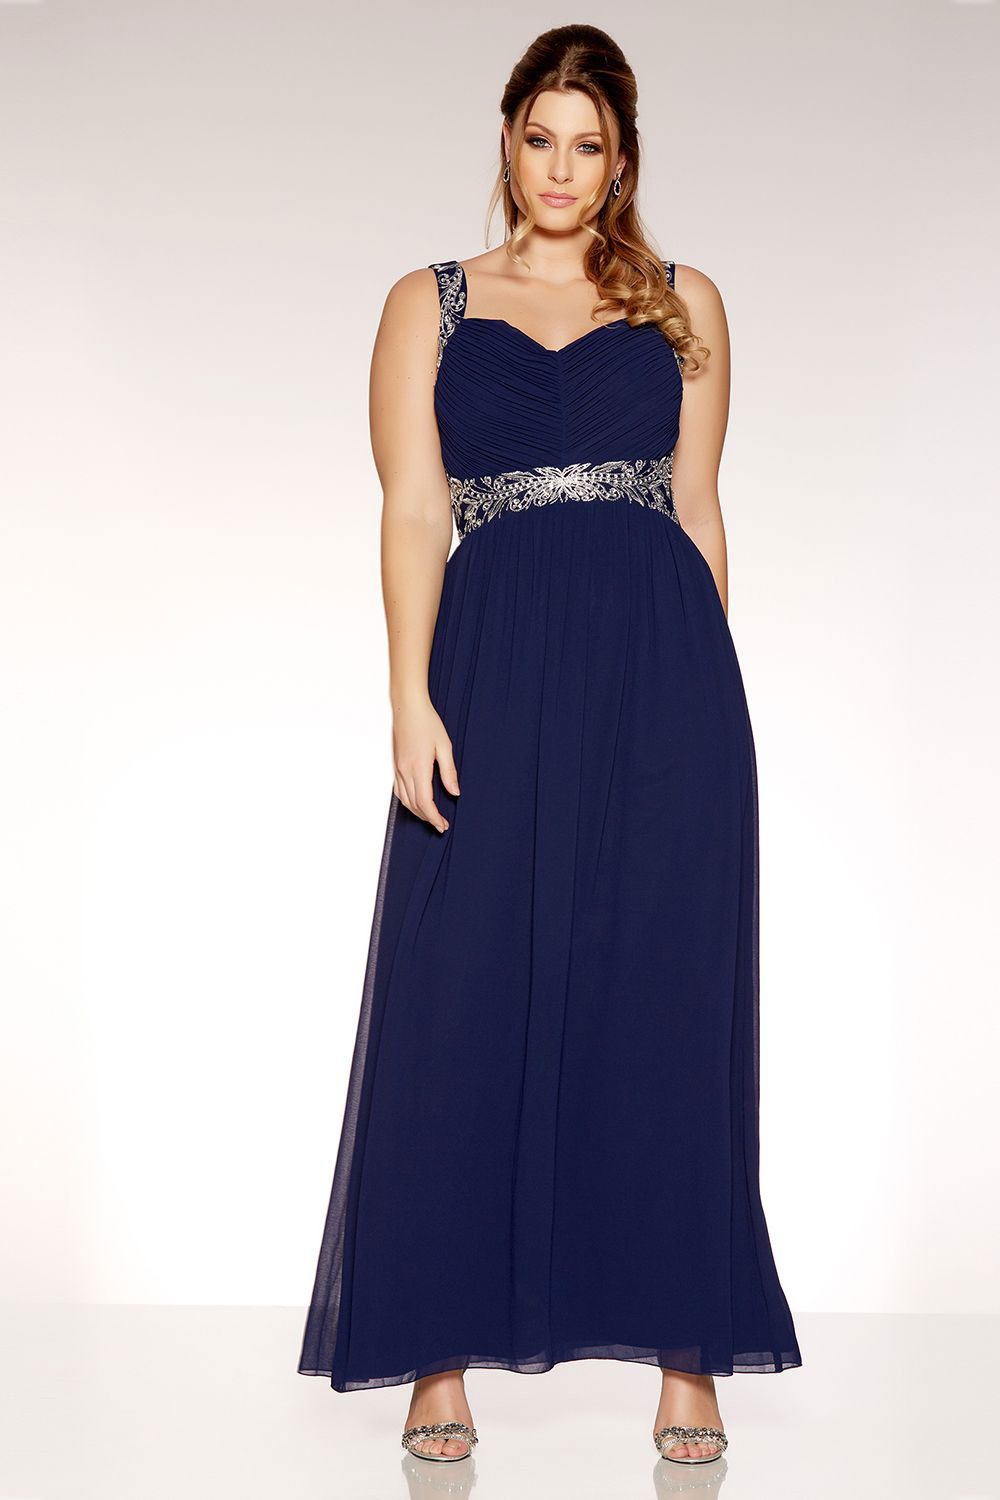 Best plus size bridesmaid dresses 2018 15 styles you are best plus size bridesmaid dresses 2018 15 styles you are guaranteed to love ombrellifo Choice Image